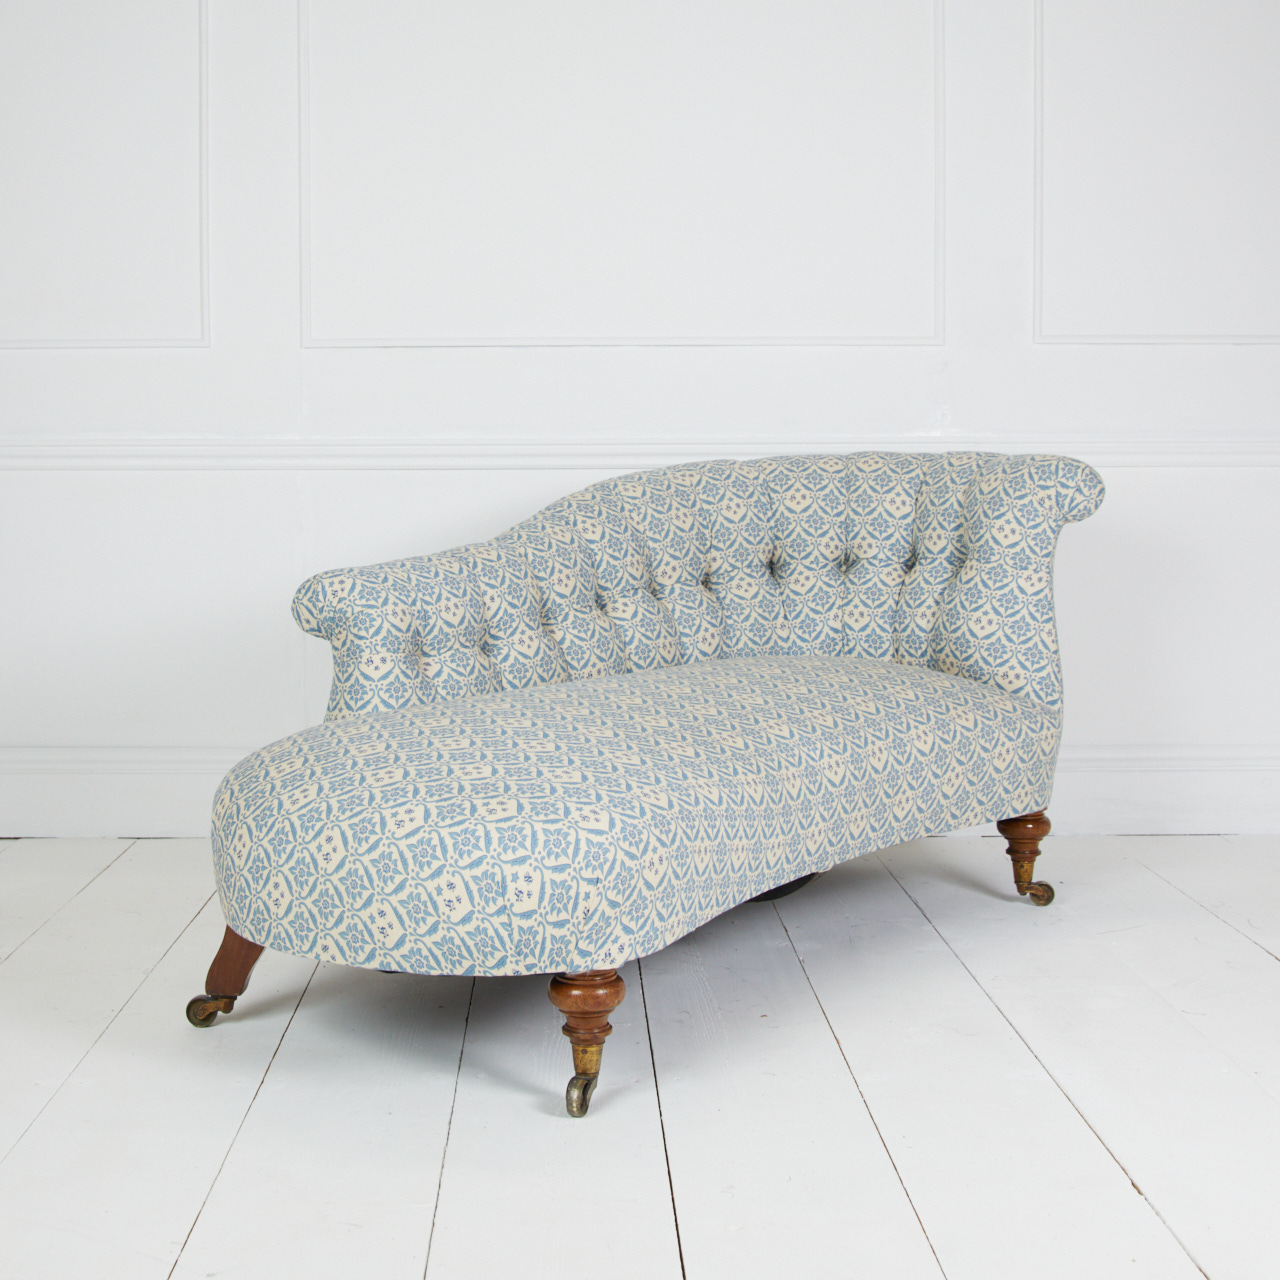 Drew Prtichard Howard and Sons Sofa Image 1